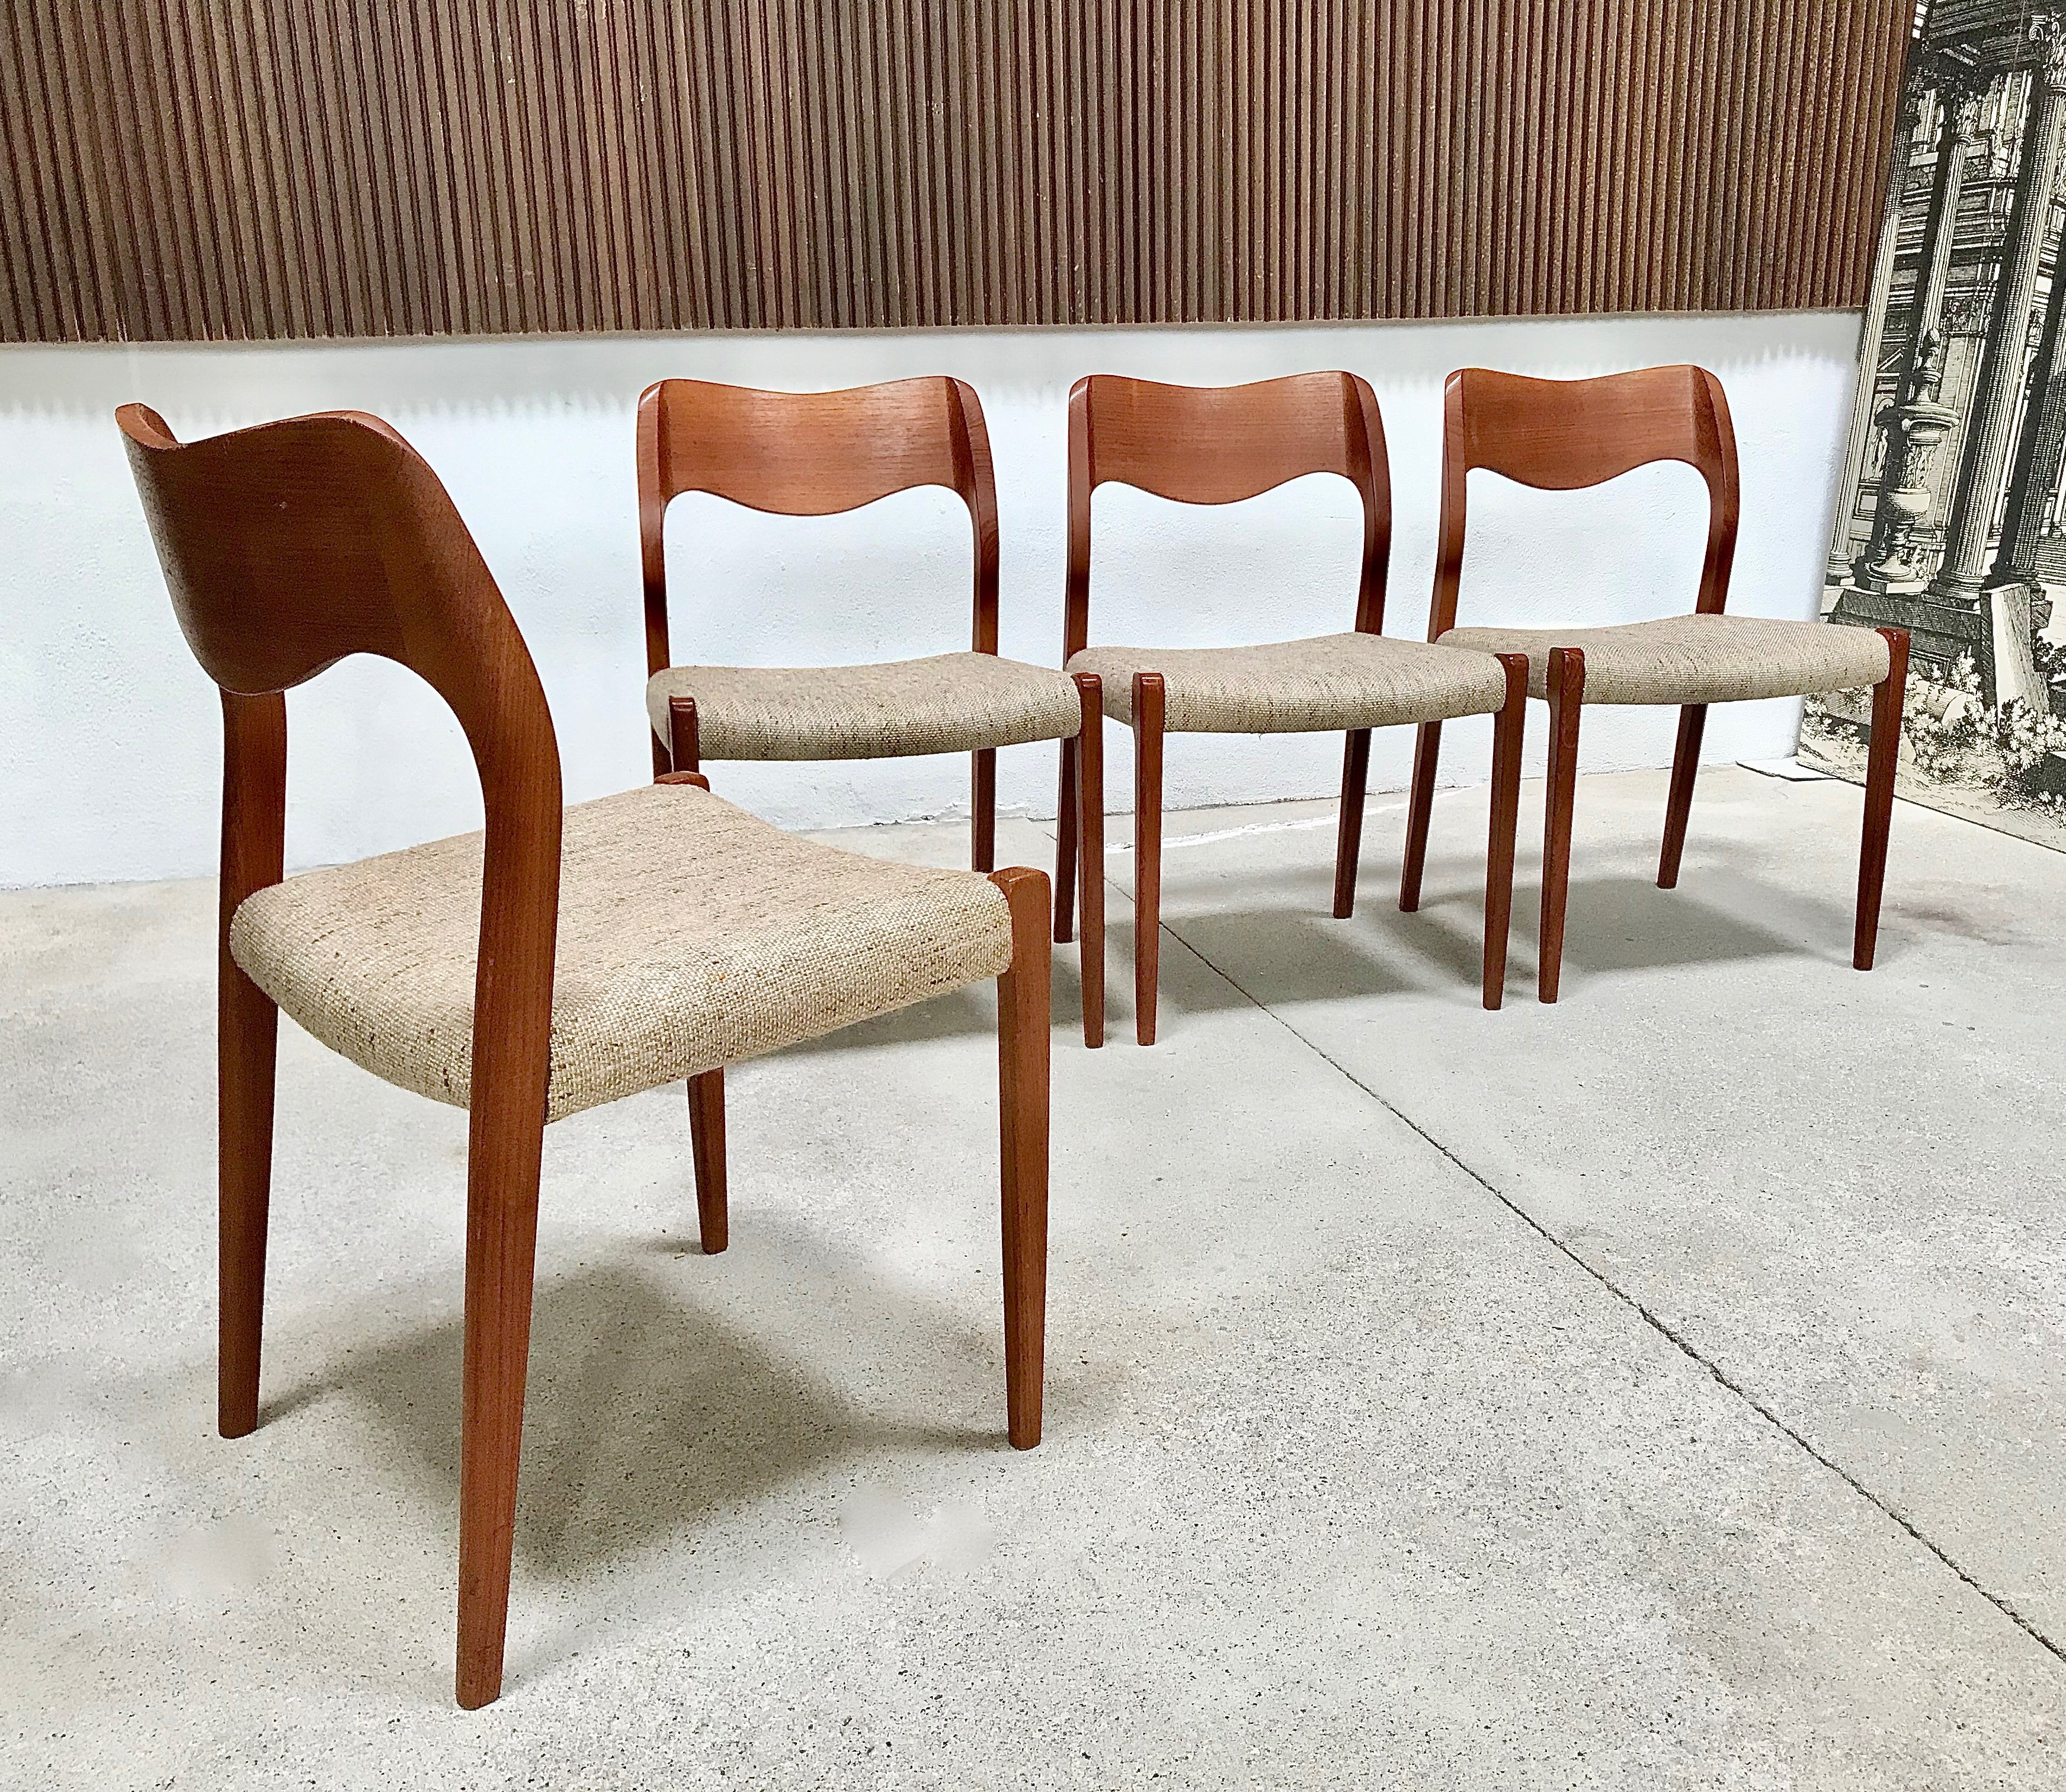 Set Of 4 Danish Teak Dining Chairs No 71 By Niels O Moller For Jl Mollers 1960s 139689